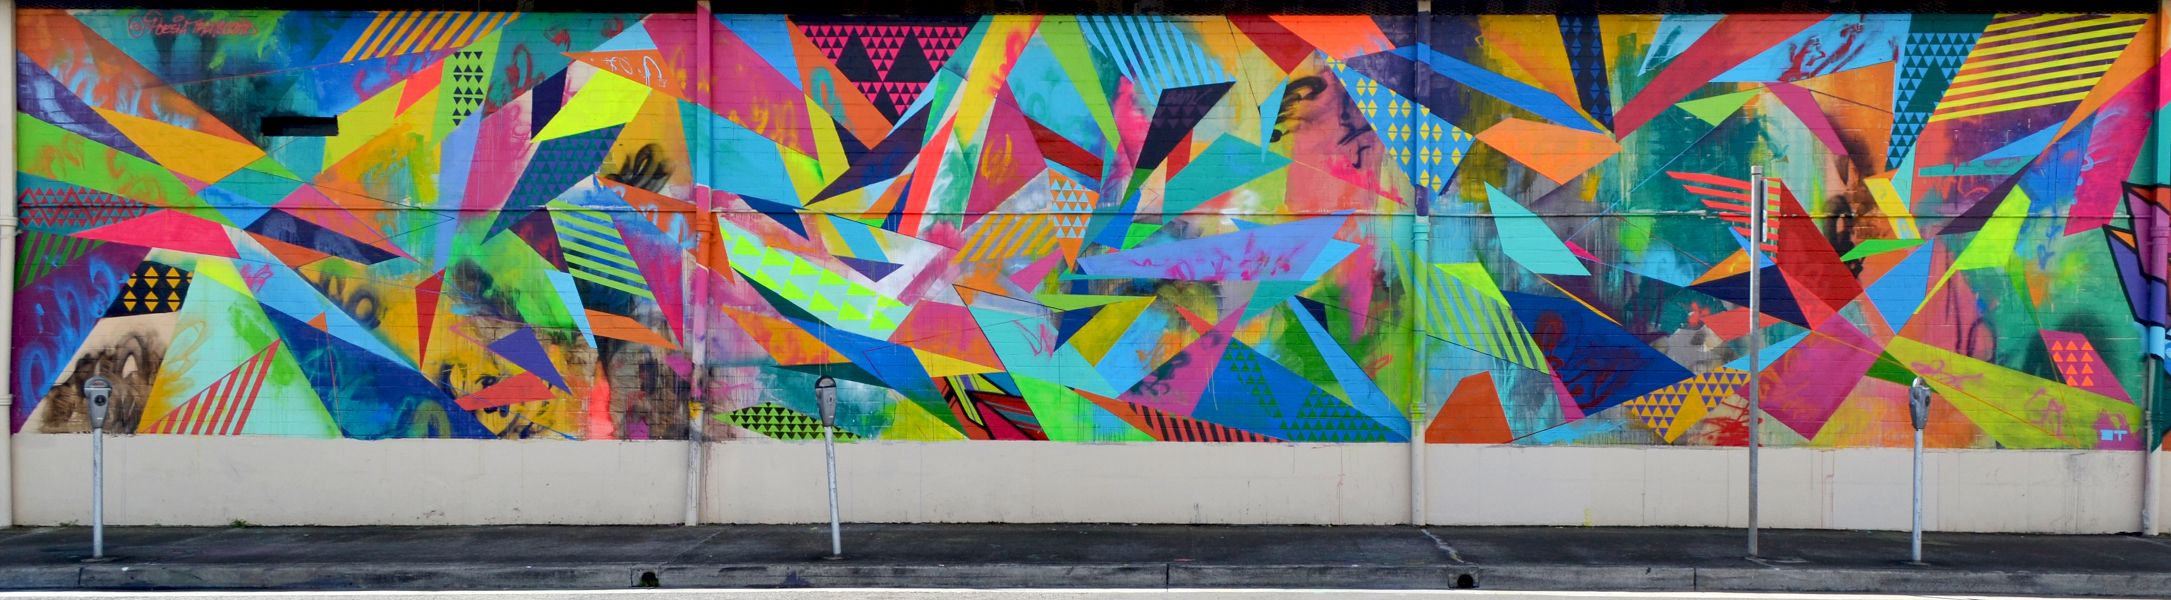 Amazing colors and composition hawaii mural by poesia murals amazing colors and composition hawaii mural by poesia murals graffuturism amipublicfo Image collections